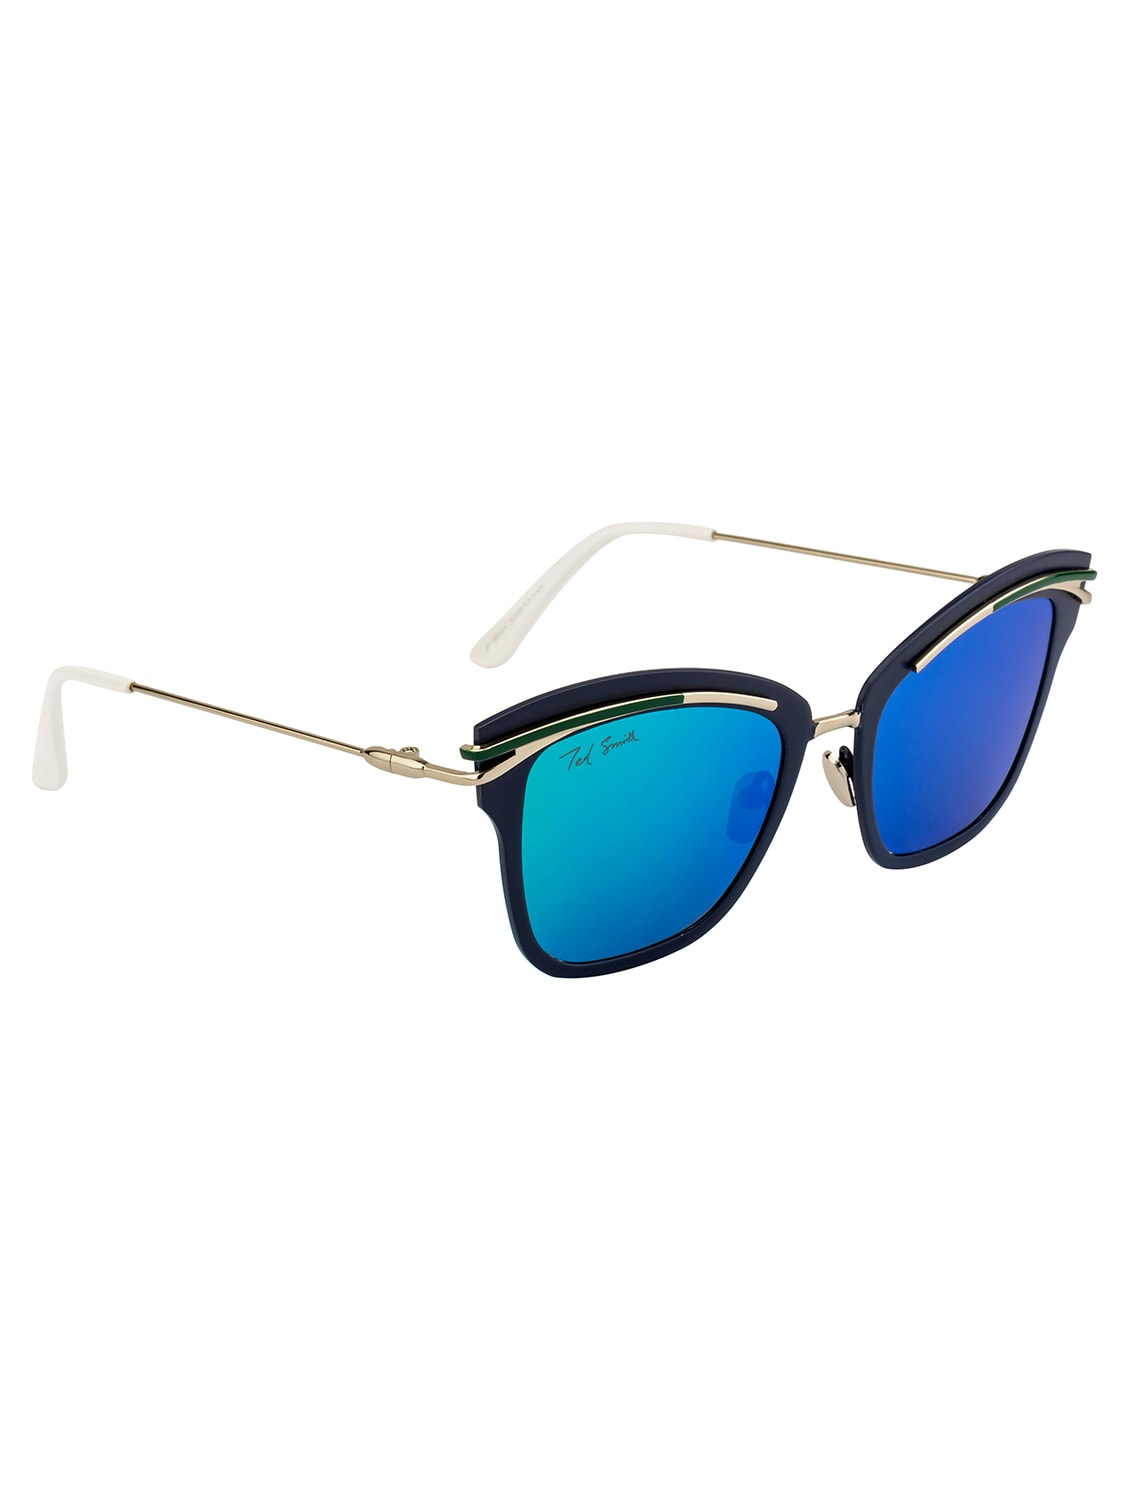 5f86a5f5ee5 Buy Ted Smith Women Square Silver With Matt Blue Polarized Sunglasses by Ted  Smith - Online shopping for Sunglasses in India